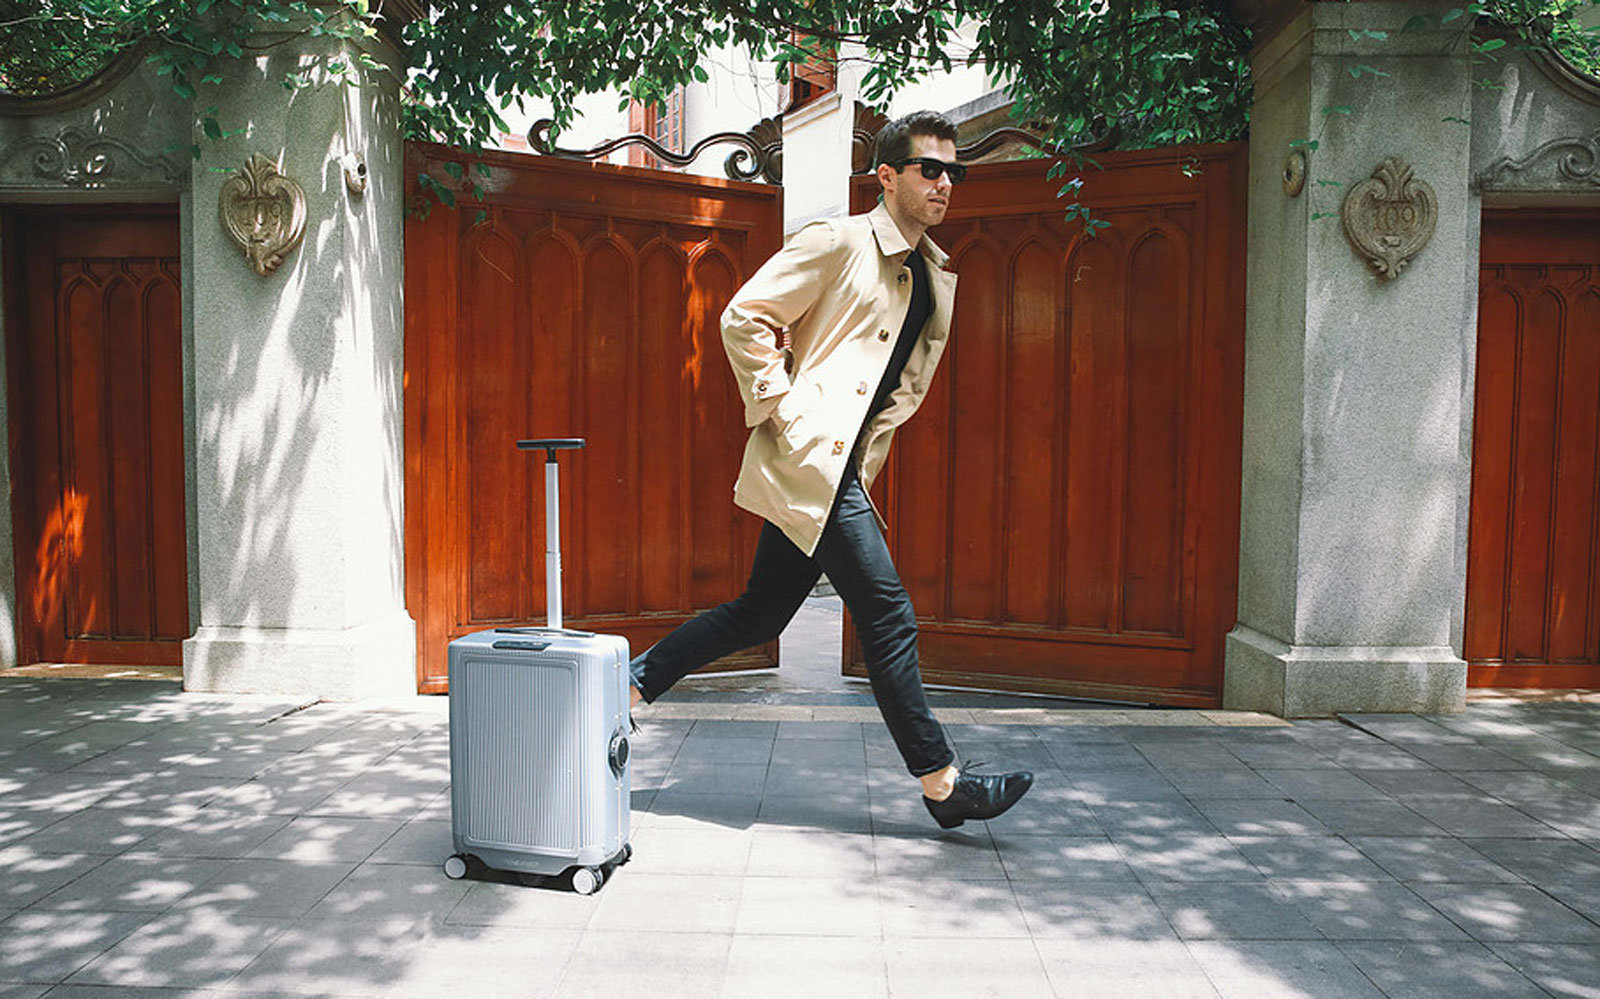 This robotic suitcase will follow you around.